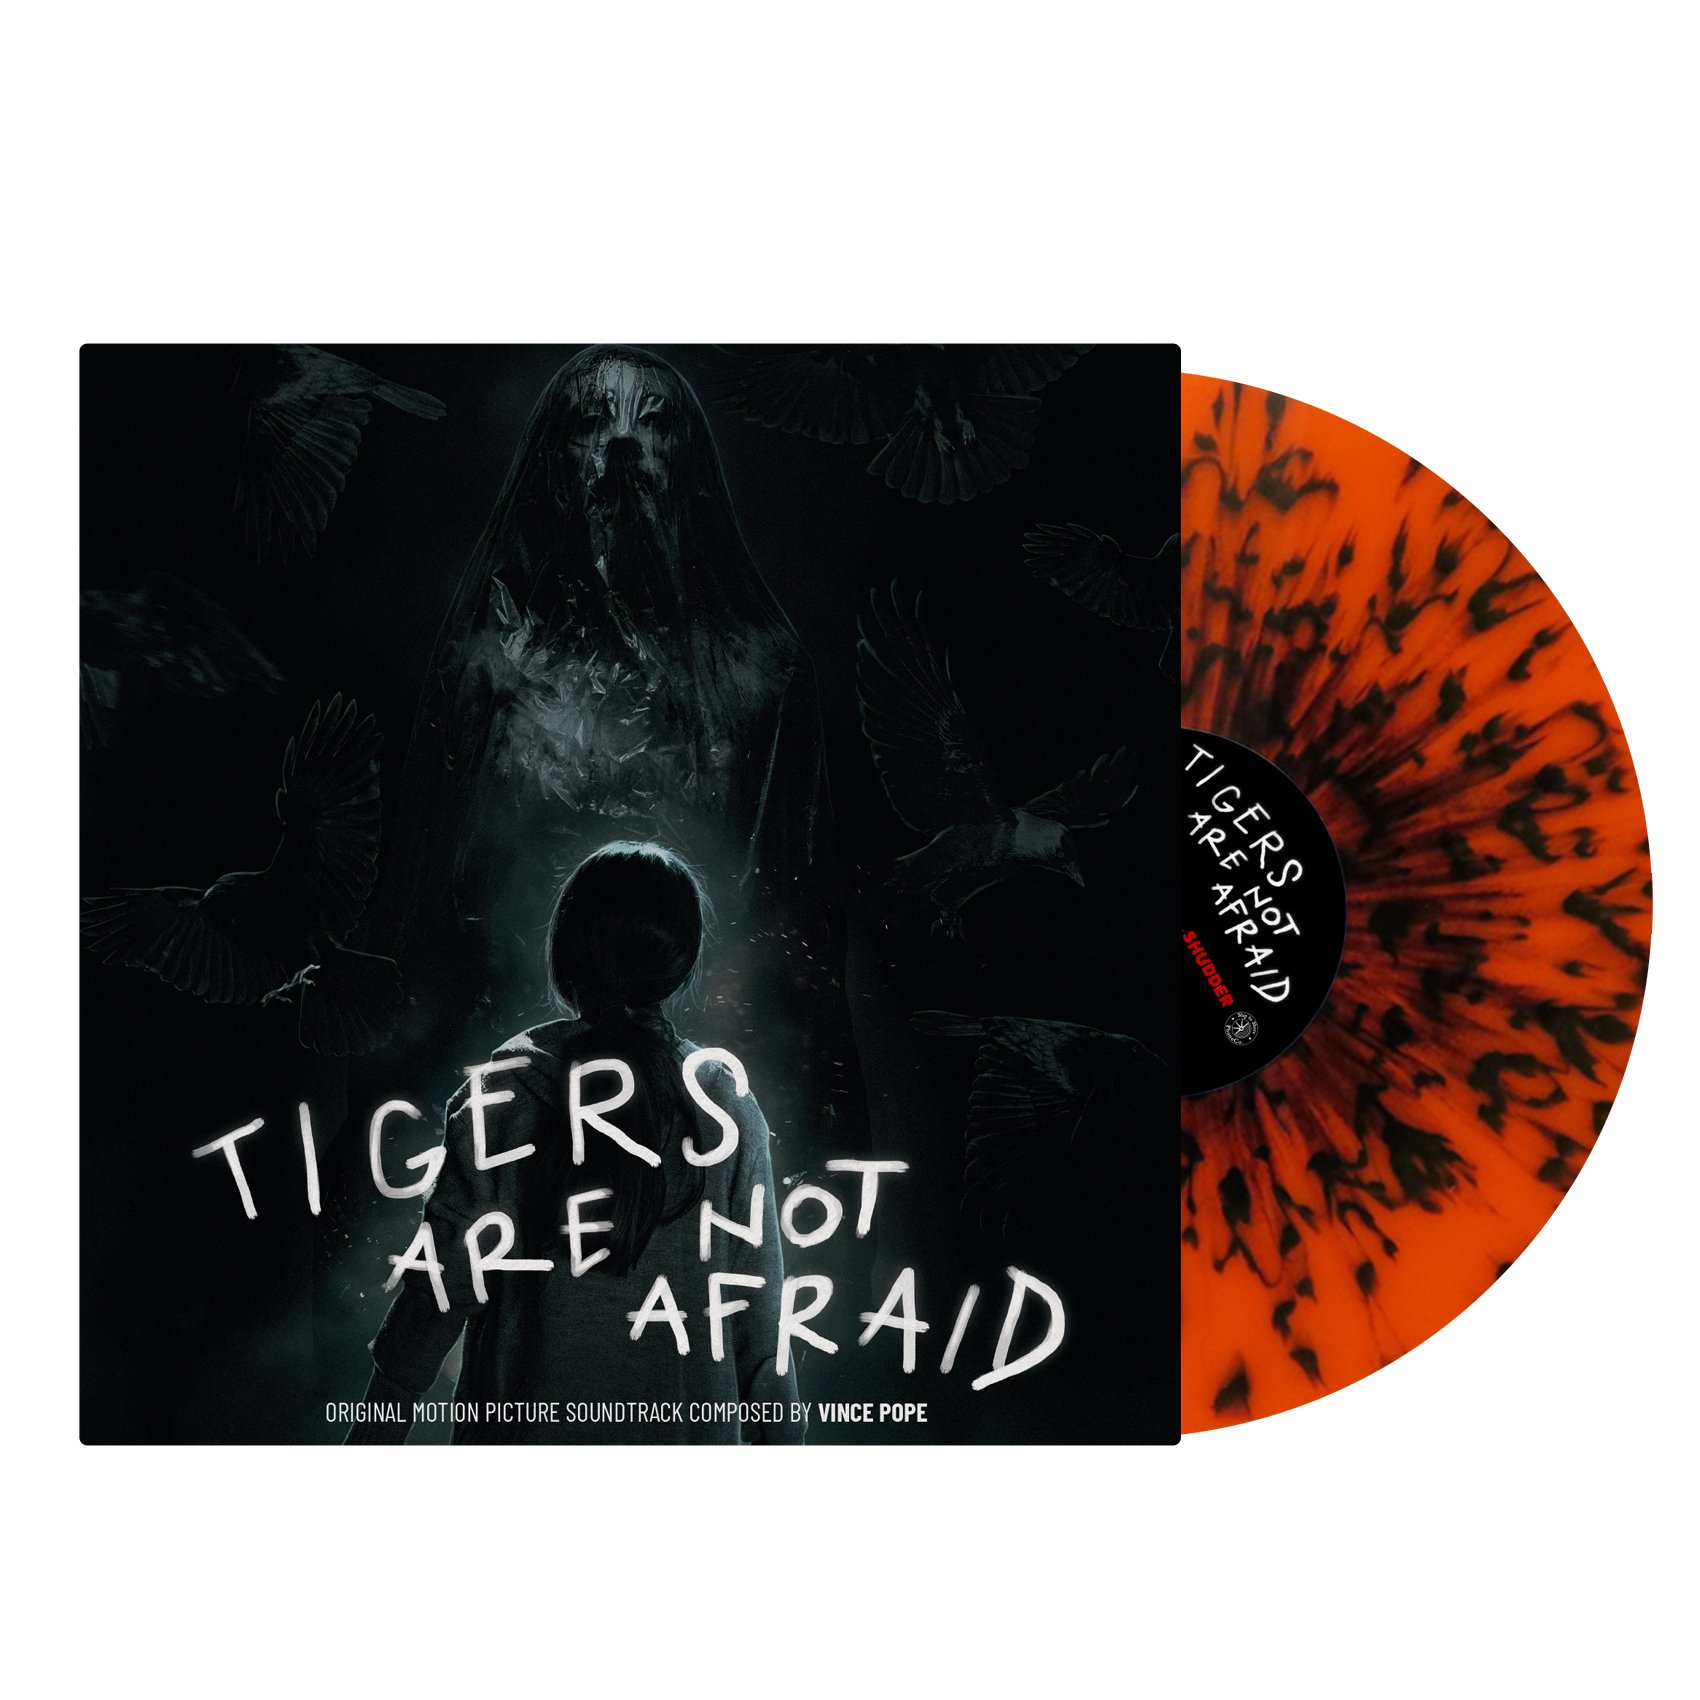 Tigers Are Not Afraid - Original Motion Picture Soundtrack